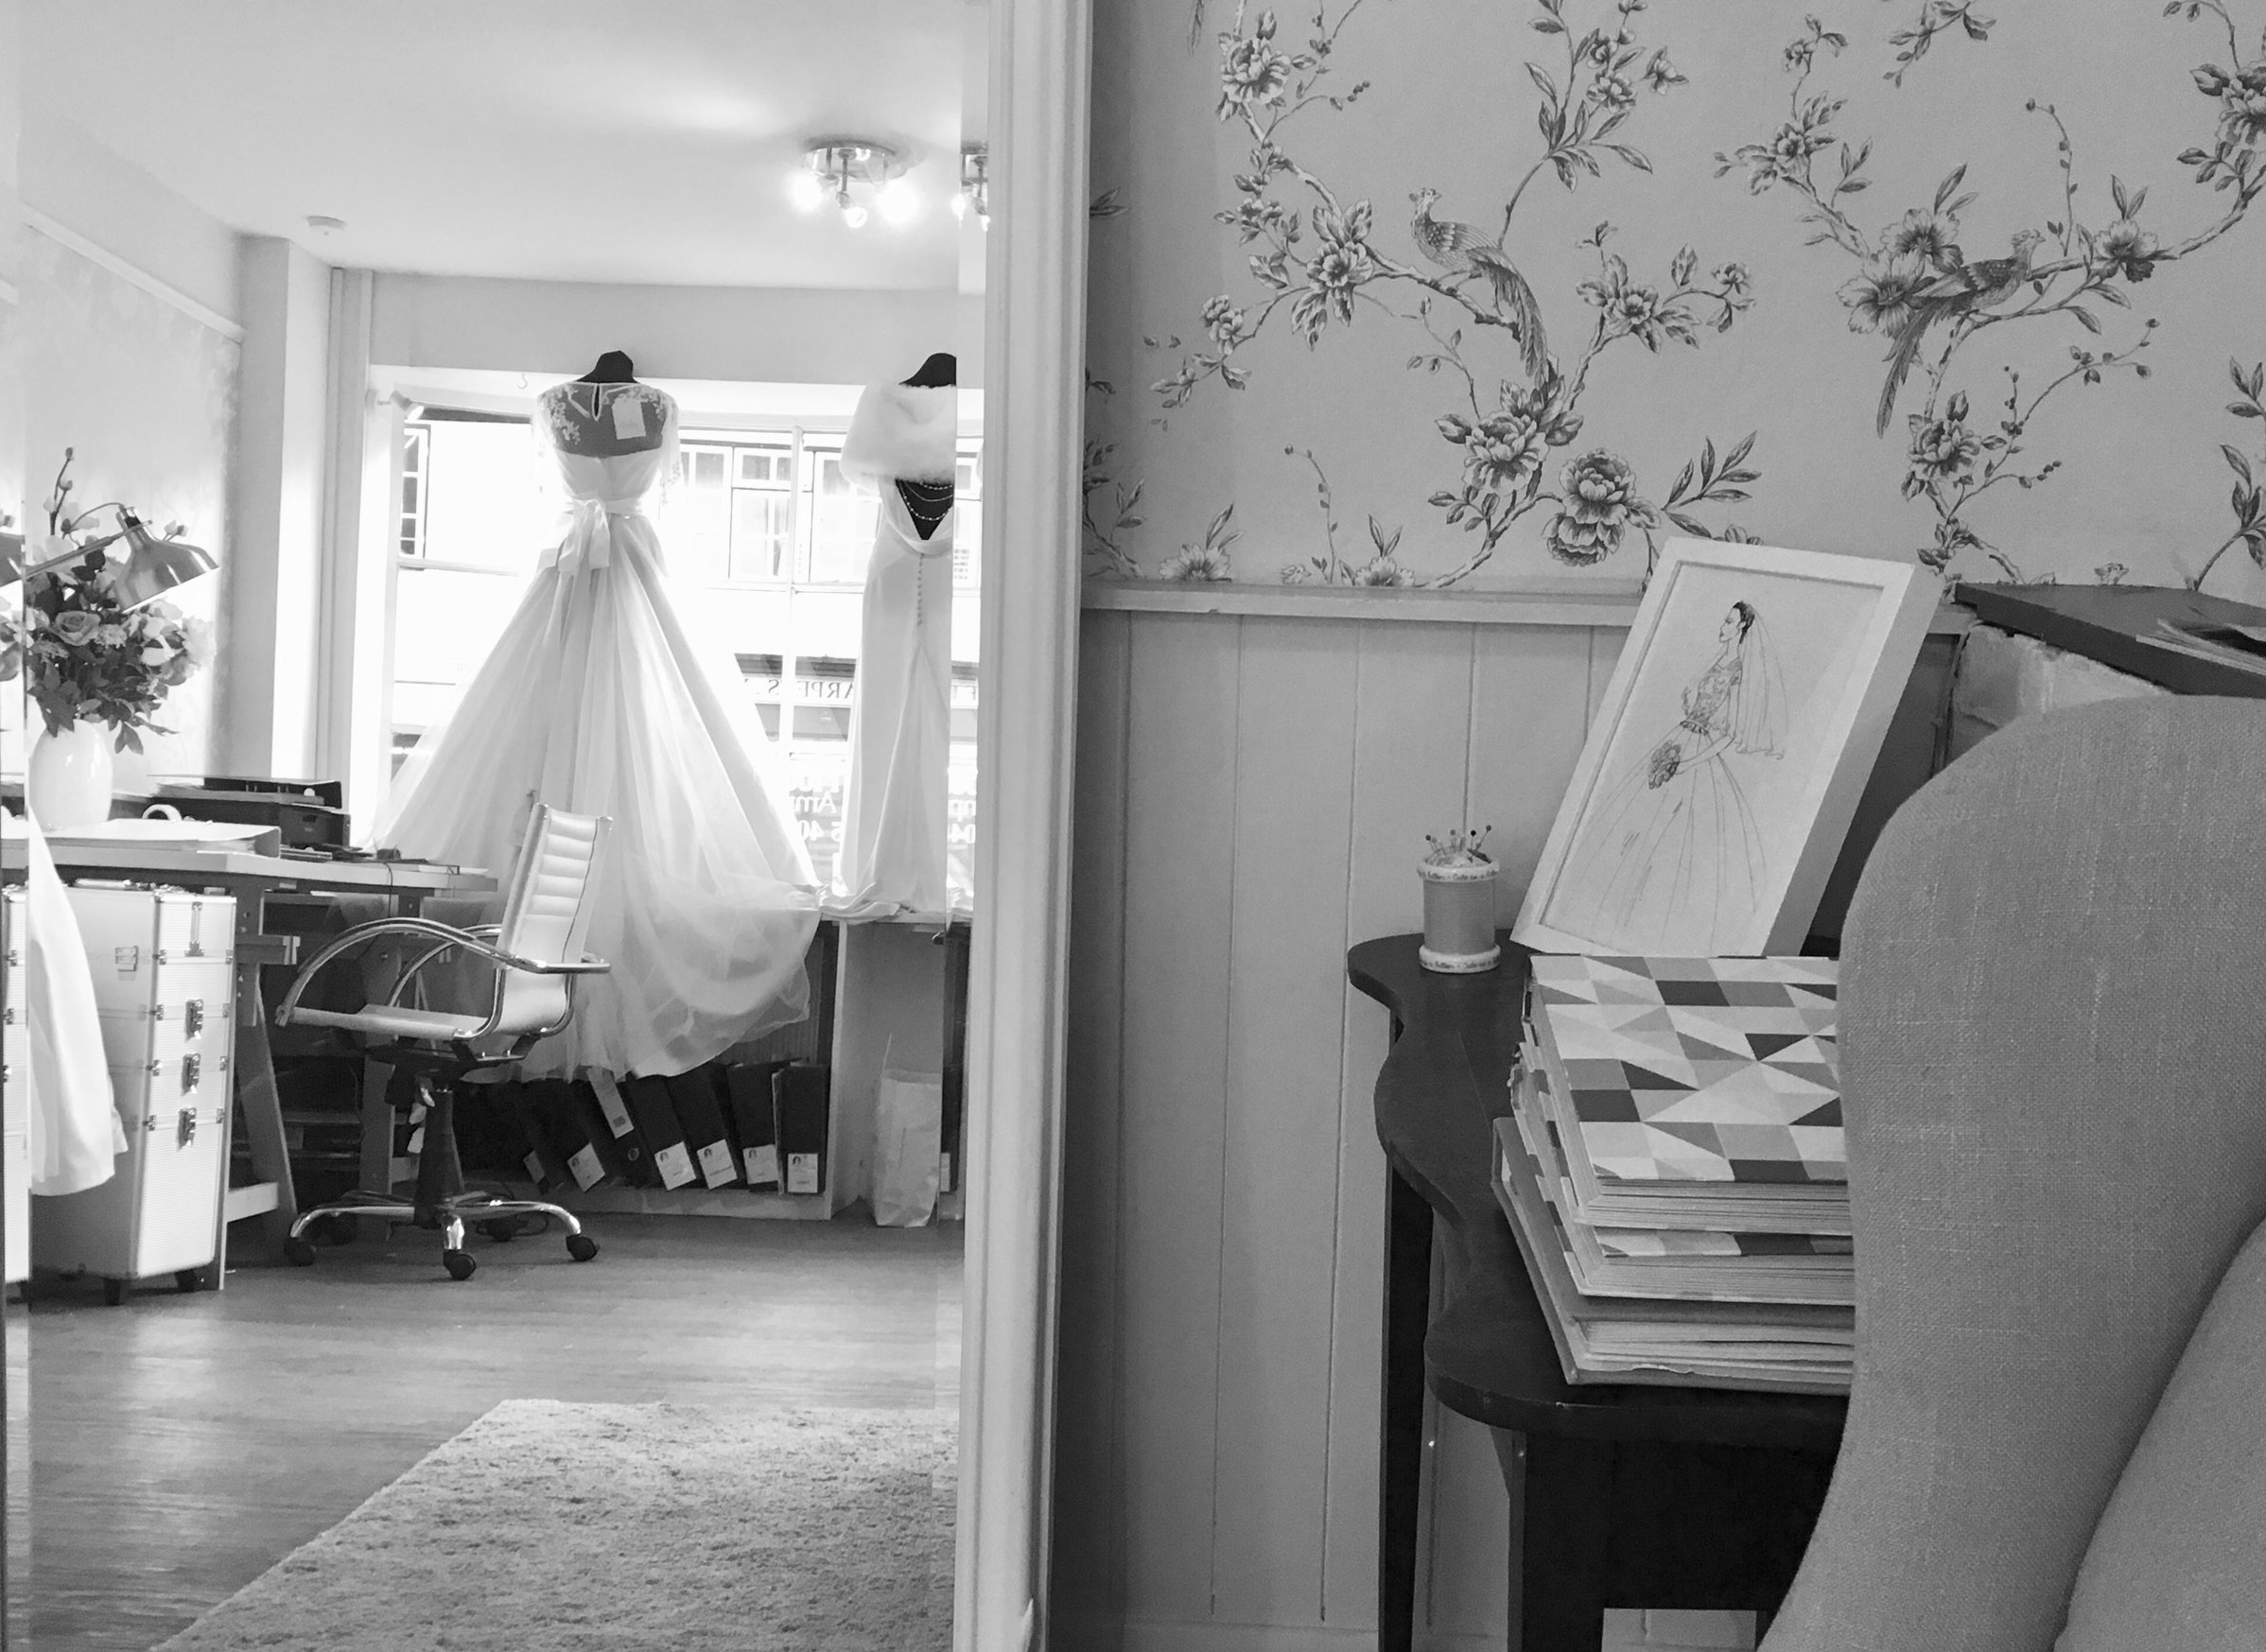 The Wedding Workshop - wedding dress & bridal gown shop in Ampthill, Bedfordshire, near Hitchin, Woburn, Milton Keynes